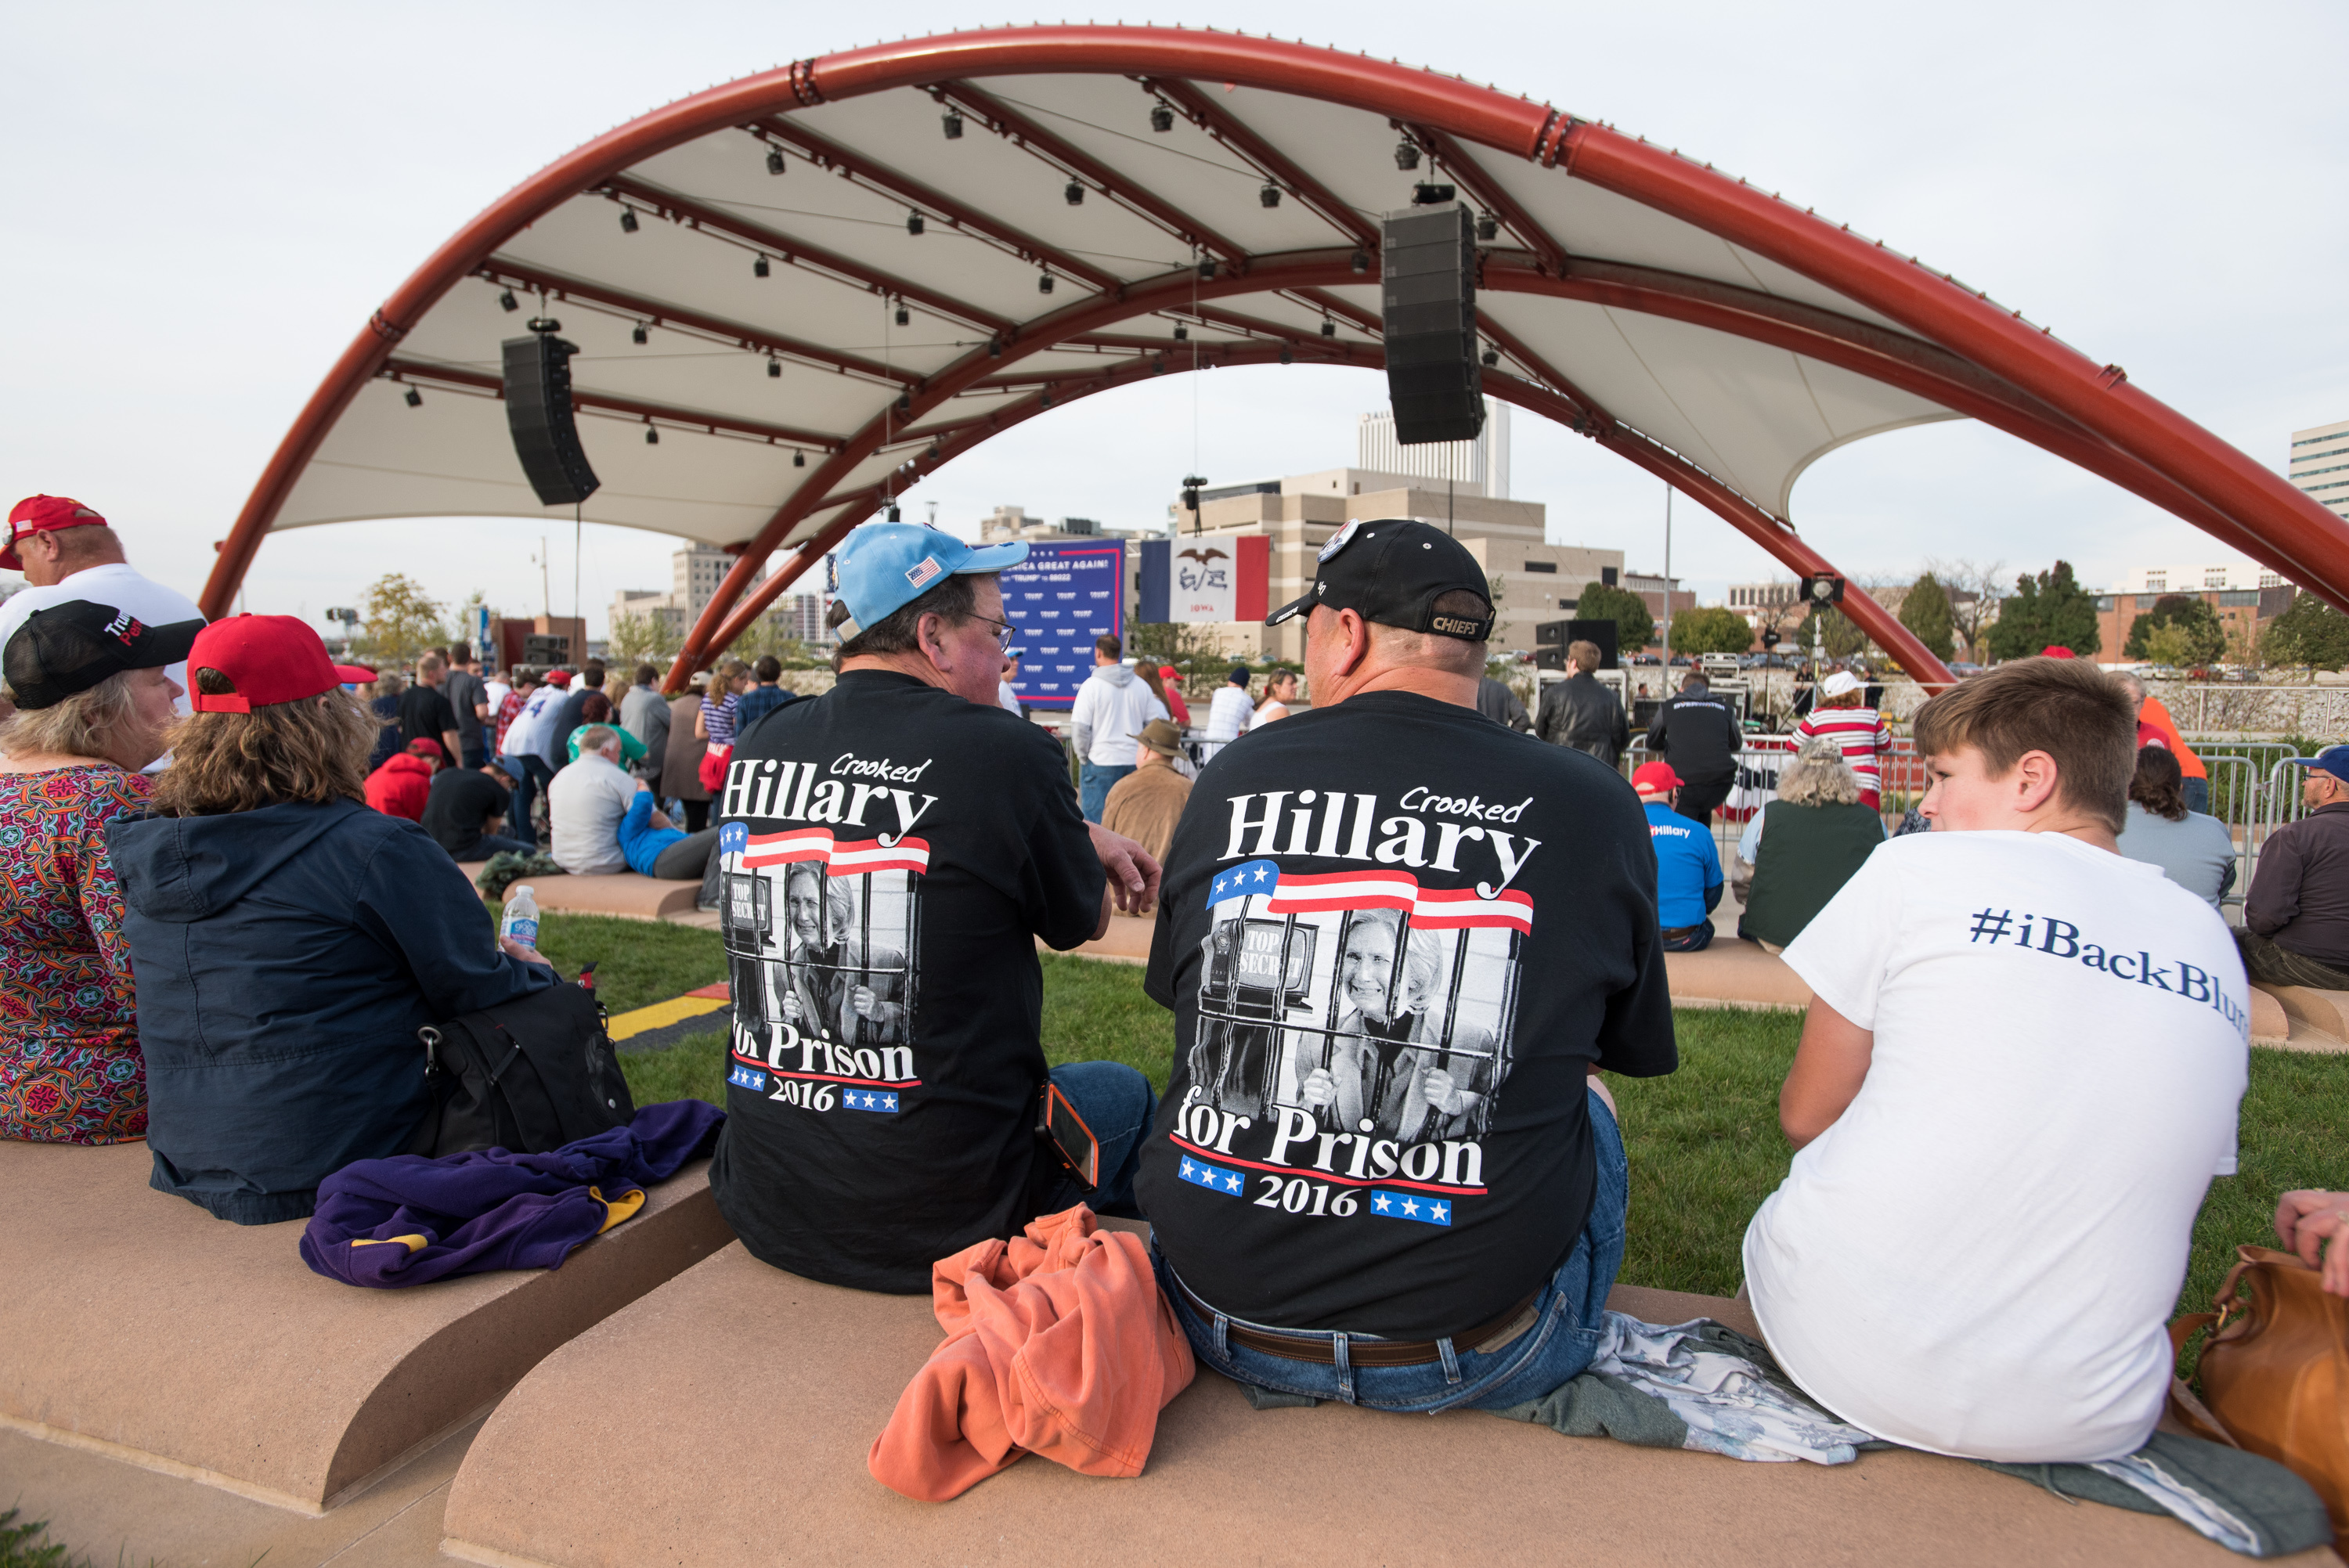 Supporters of then-Presidential candidate Donald J. Trump wait for him to speak at the McGrath Amphitheater on Oct. 28 in Cedar Rapids, Iowa. The crowd of a few thousand warmed up by chanting 'Lock her up' and waving signs of Women for Trump. (David Greedy/Getty Images)